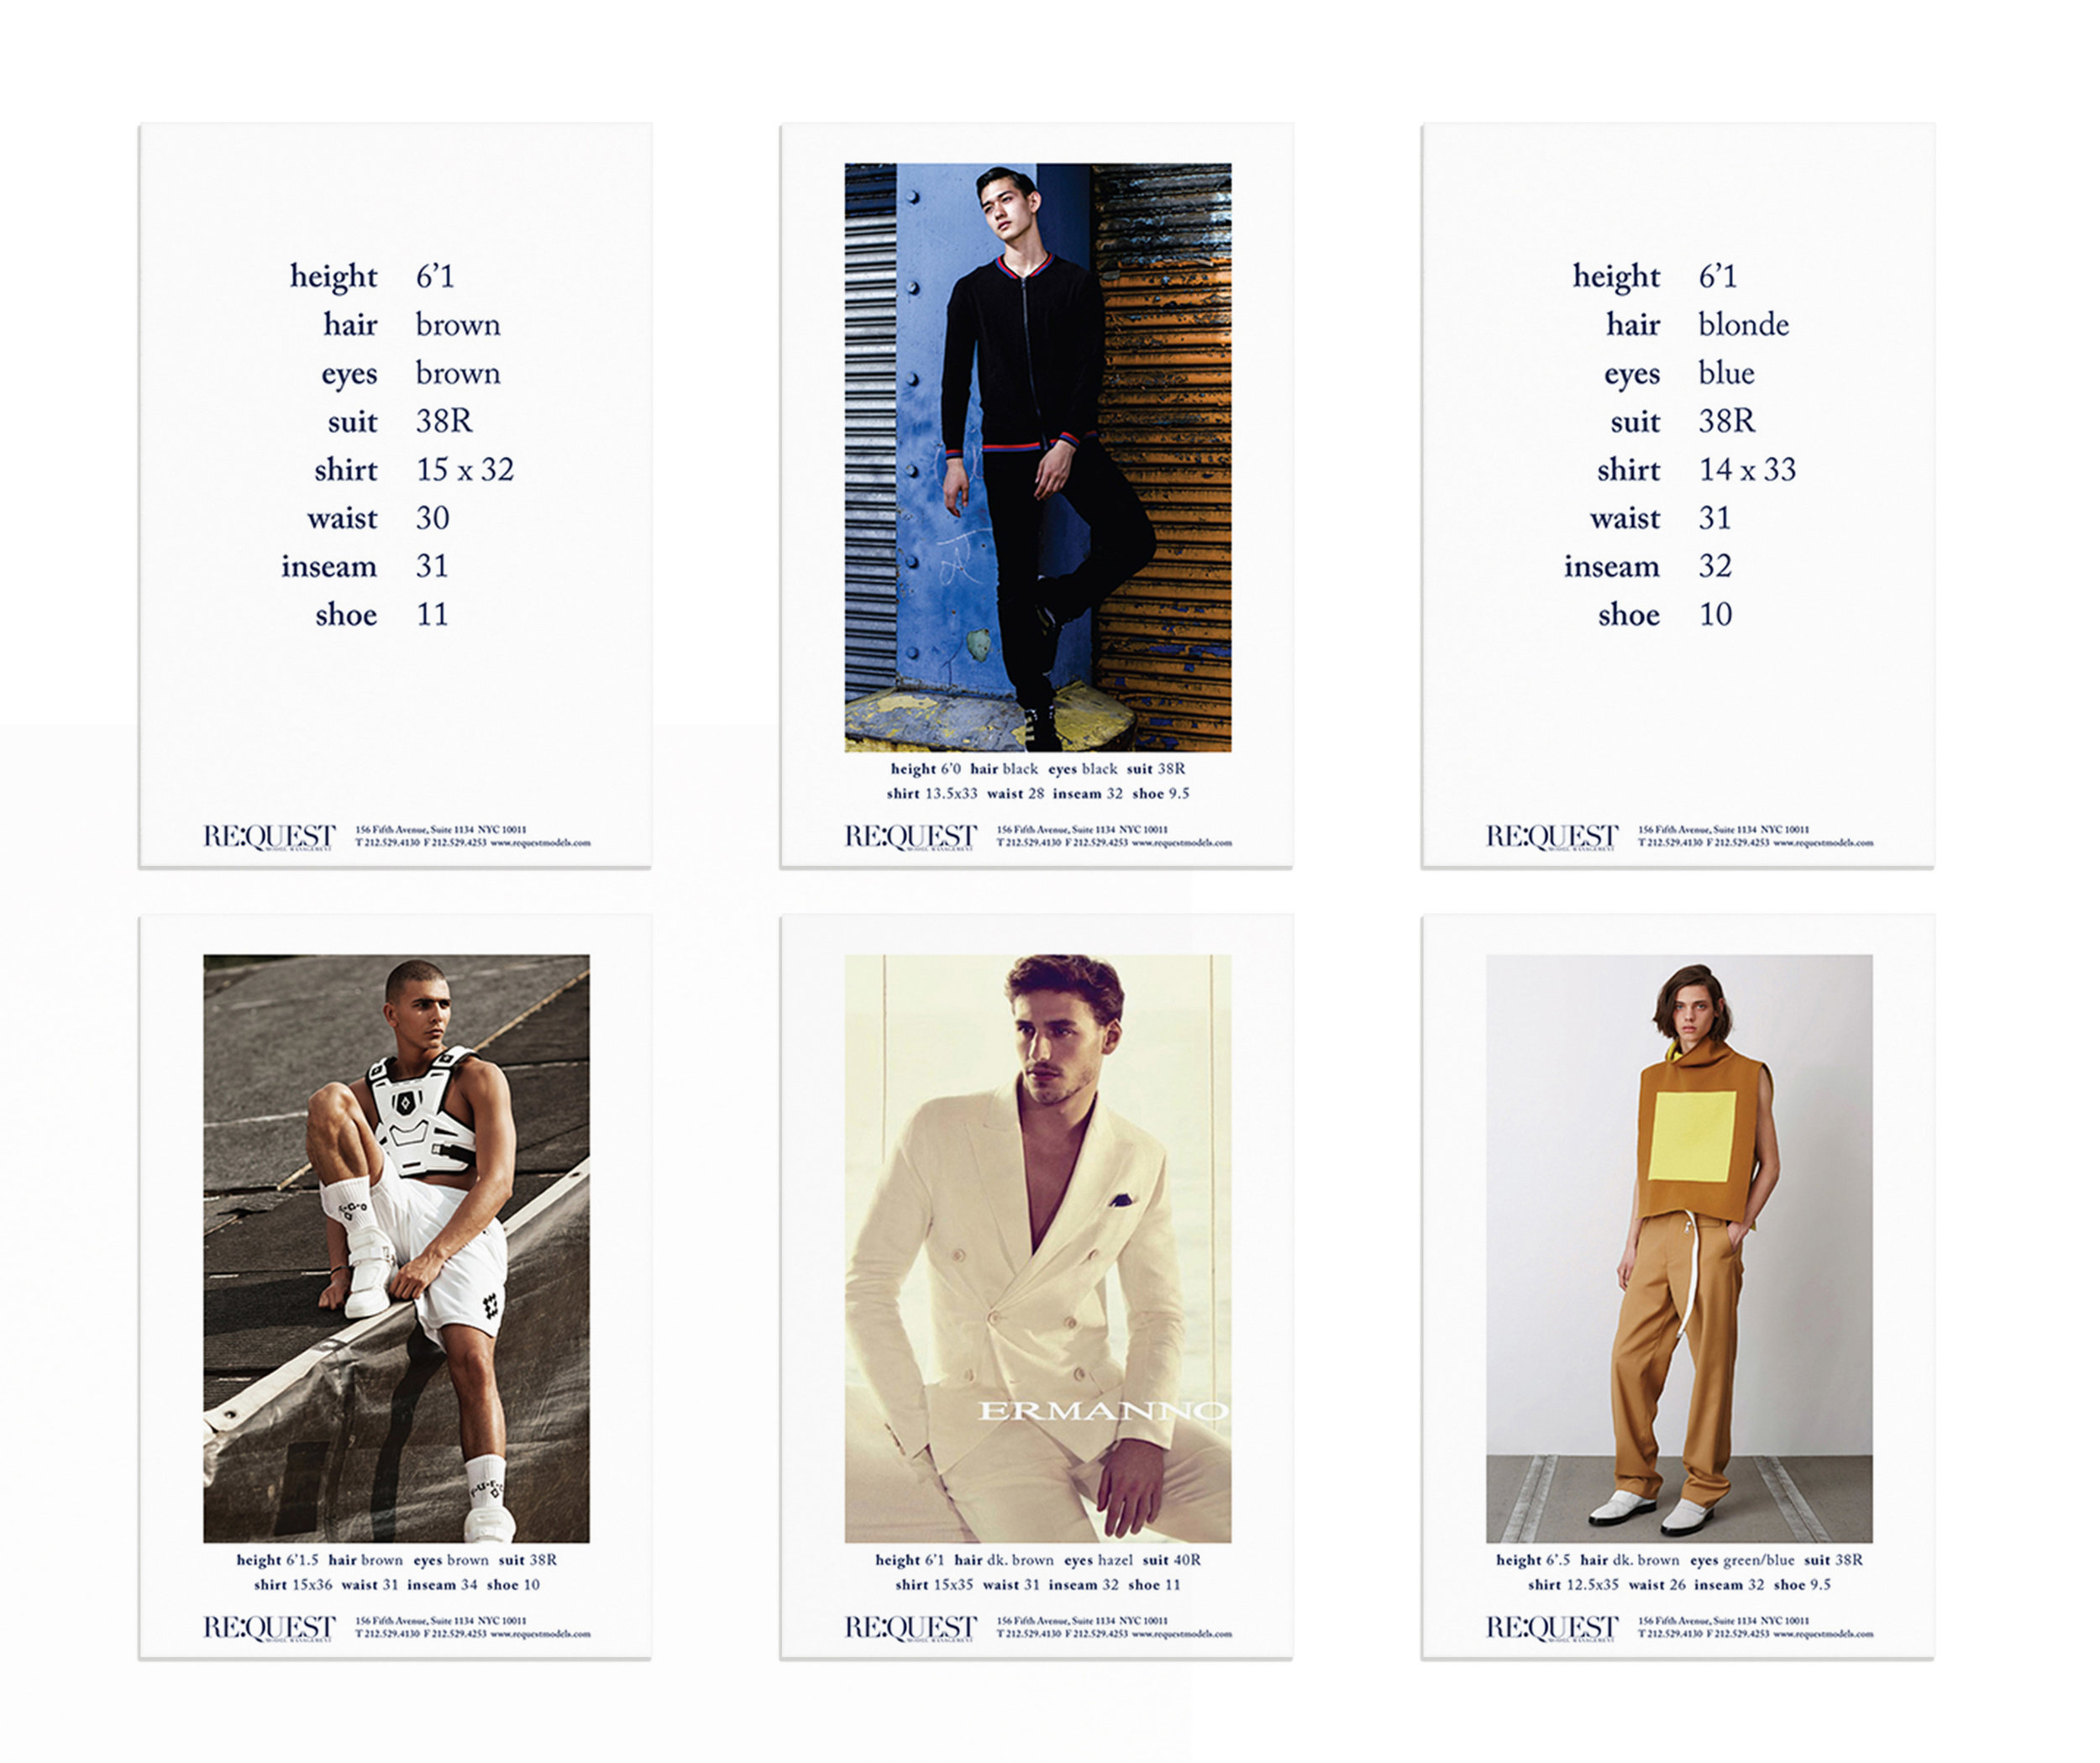 ReQuest_Models_Show_Cards_FW15_Backs.jpg